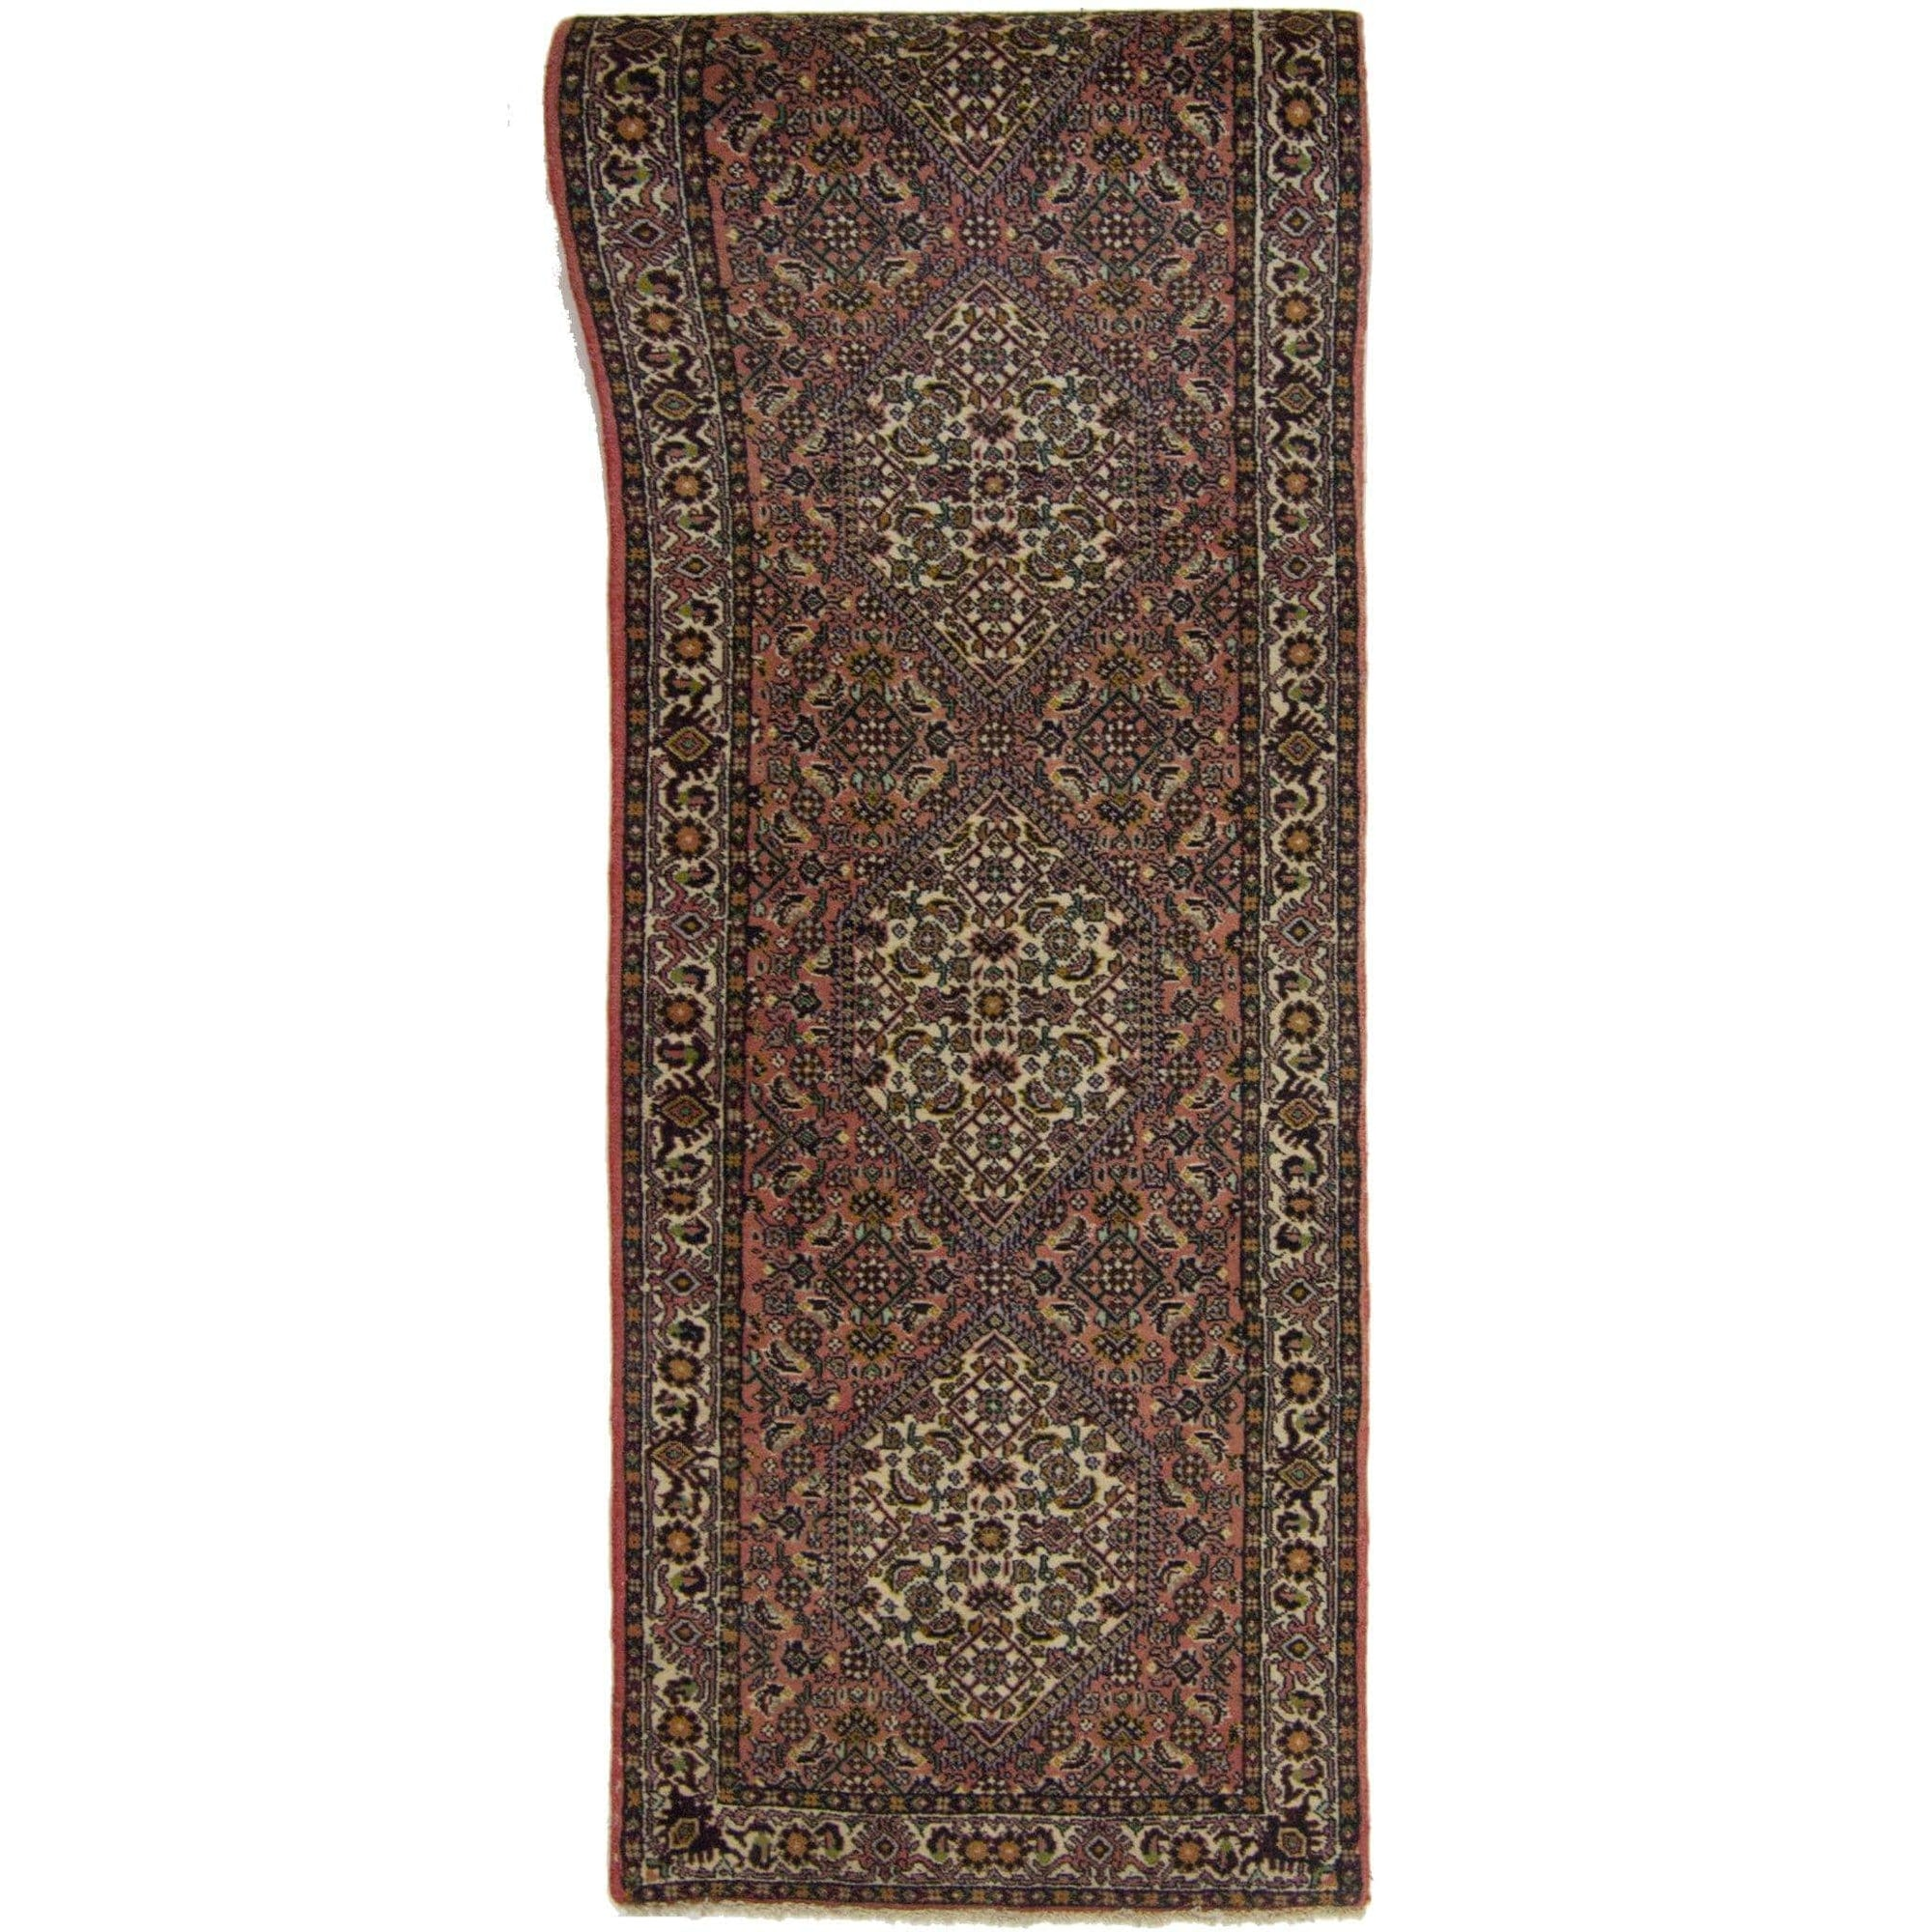 Fine Hand-knotted Wool Persian Bijar Runner 70cm x 477cm Persian-Rug | House-of-Haghi | NewMarket | Auckland | NZ | Handmade Persian Rugs | Hand Knotted Persian Rugs